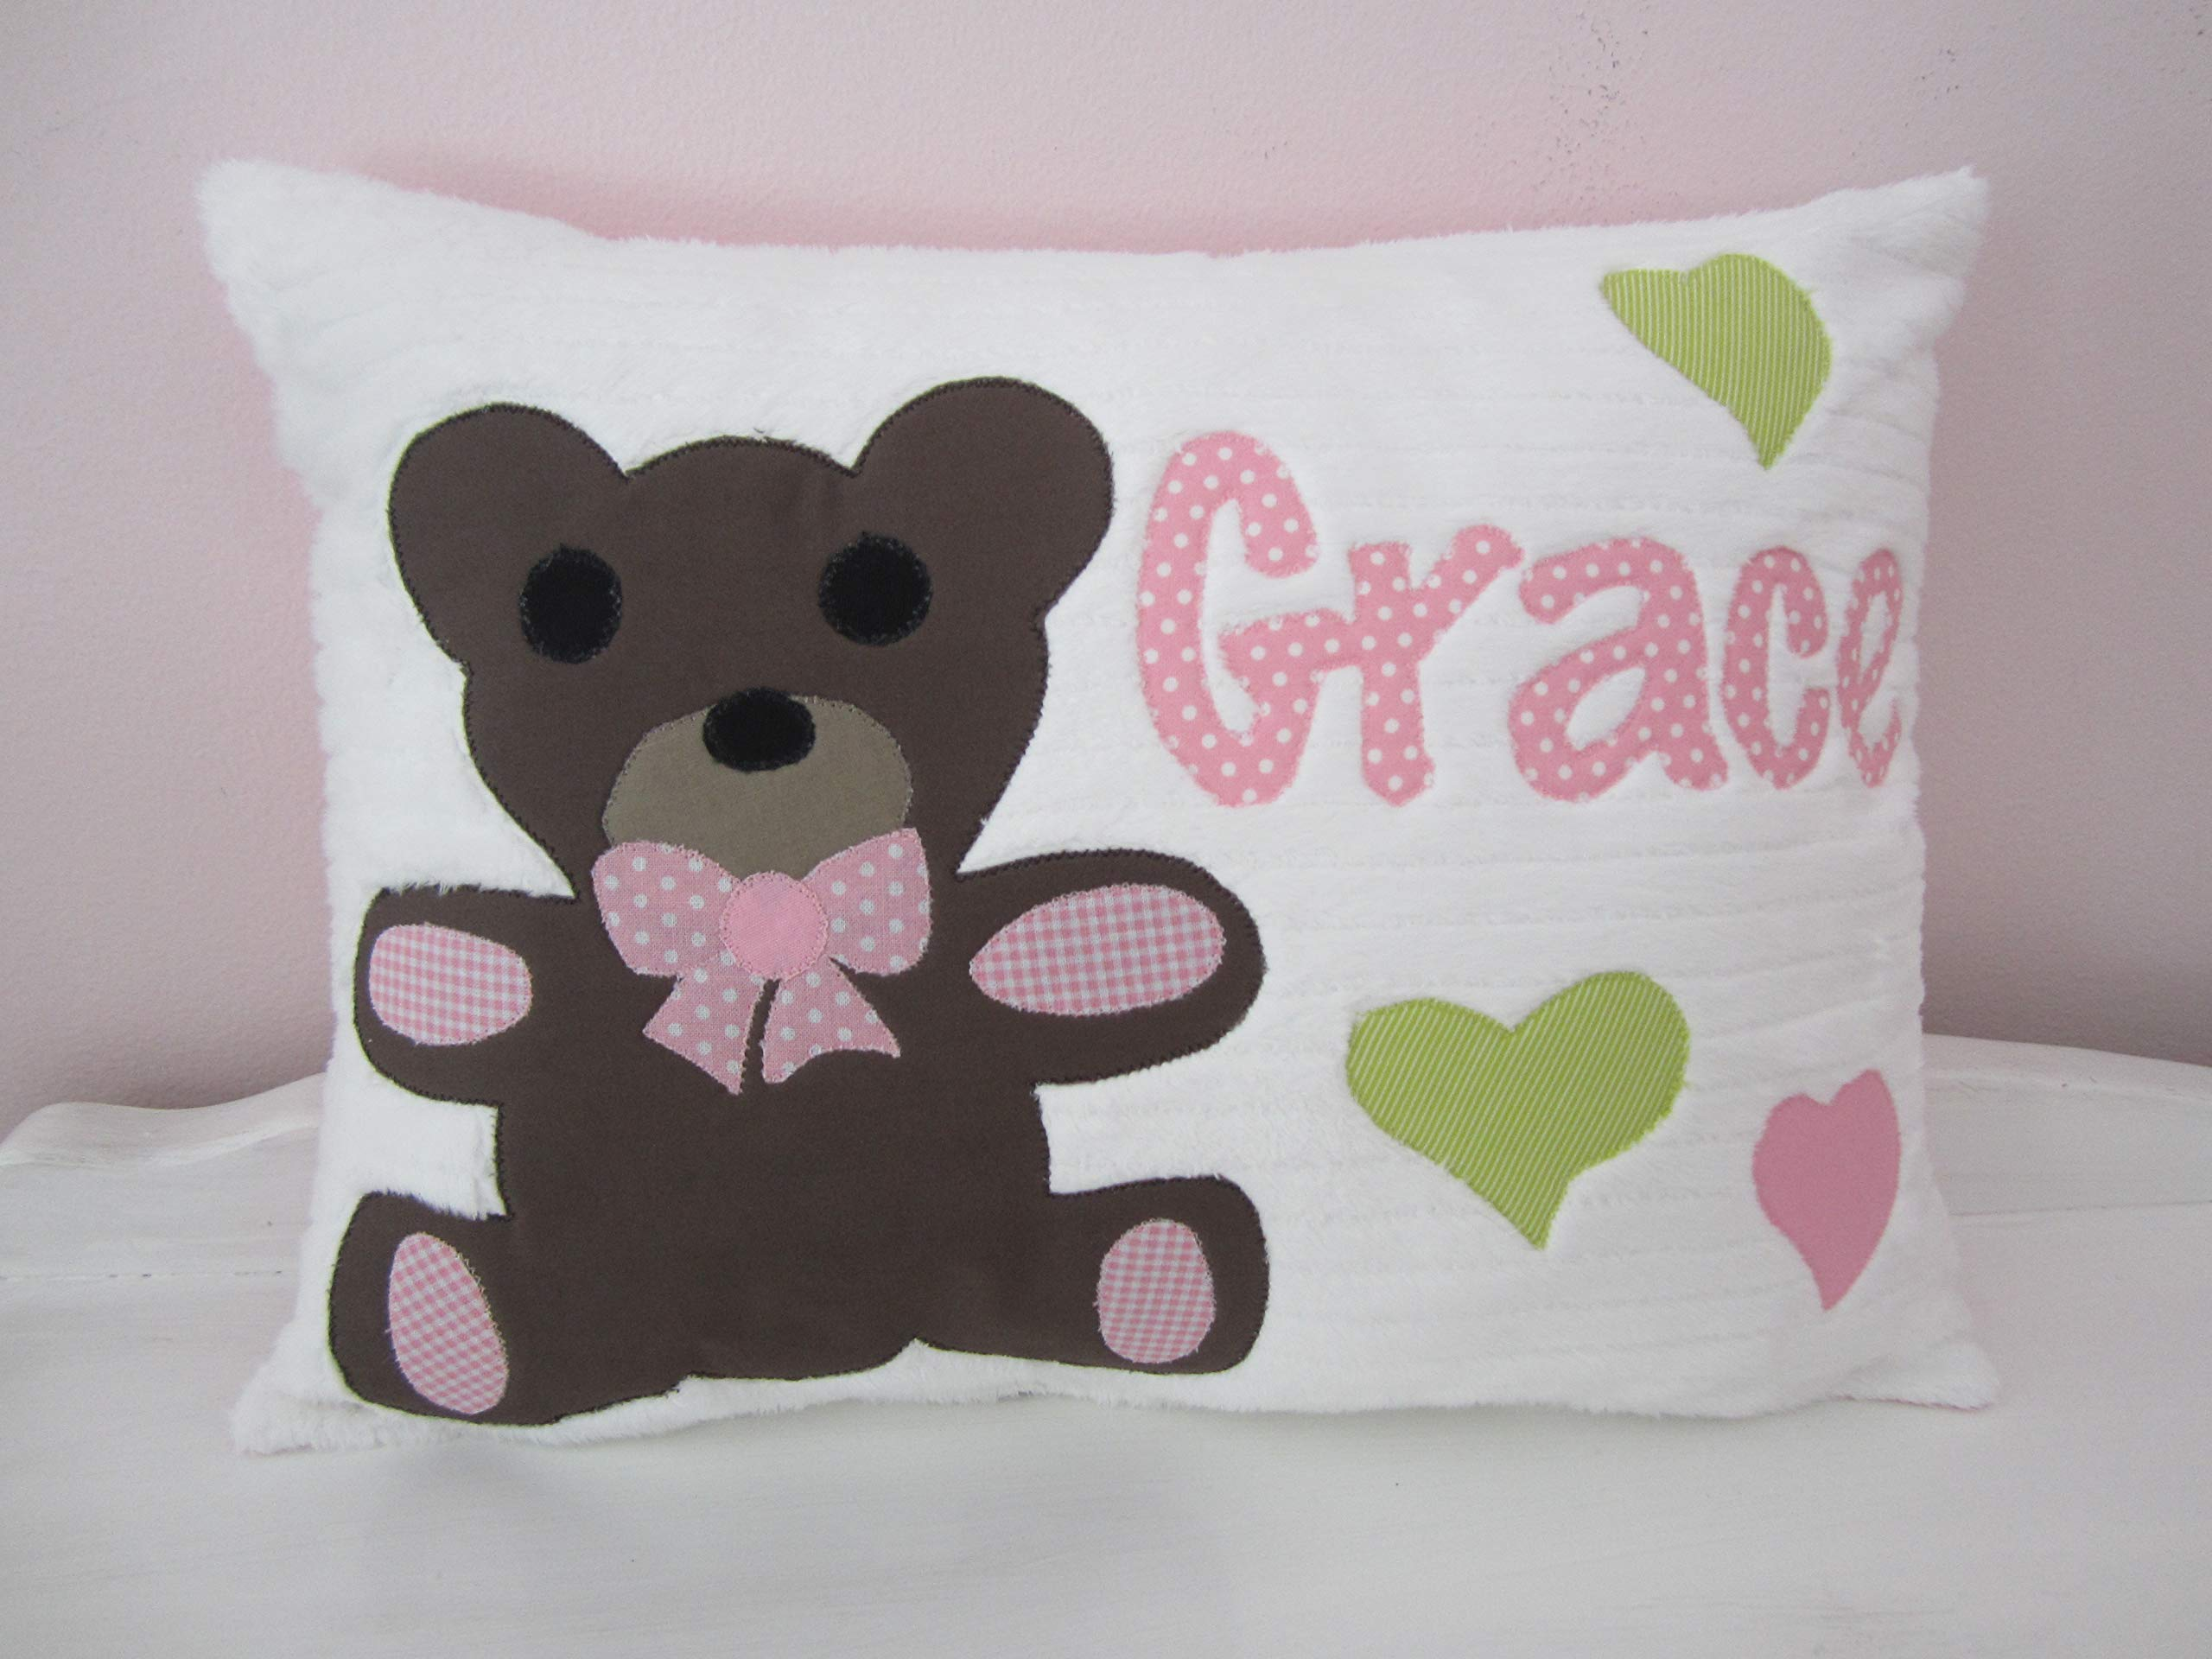 Personalized Teddy Bear pillow